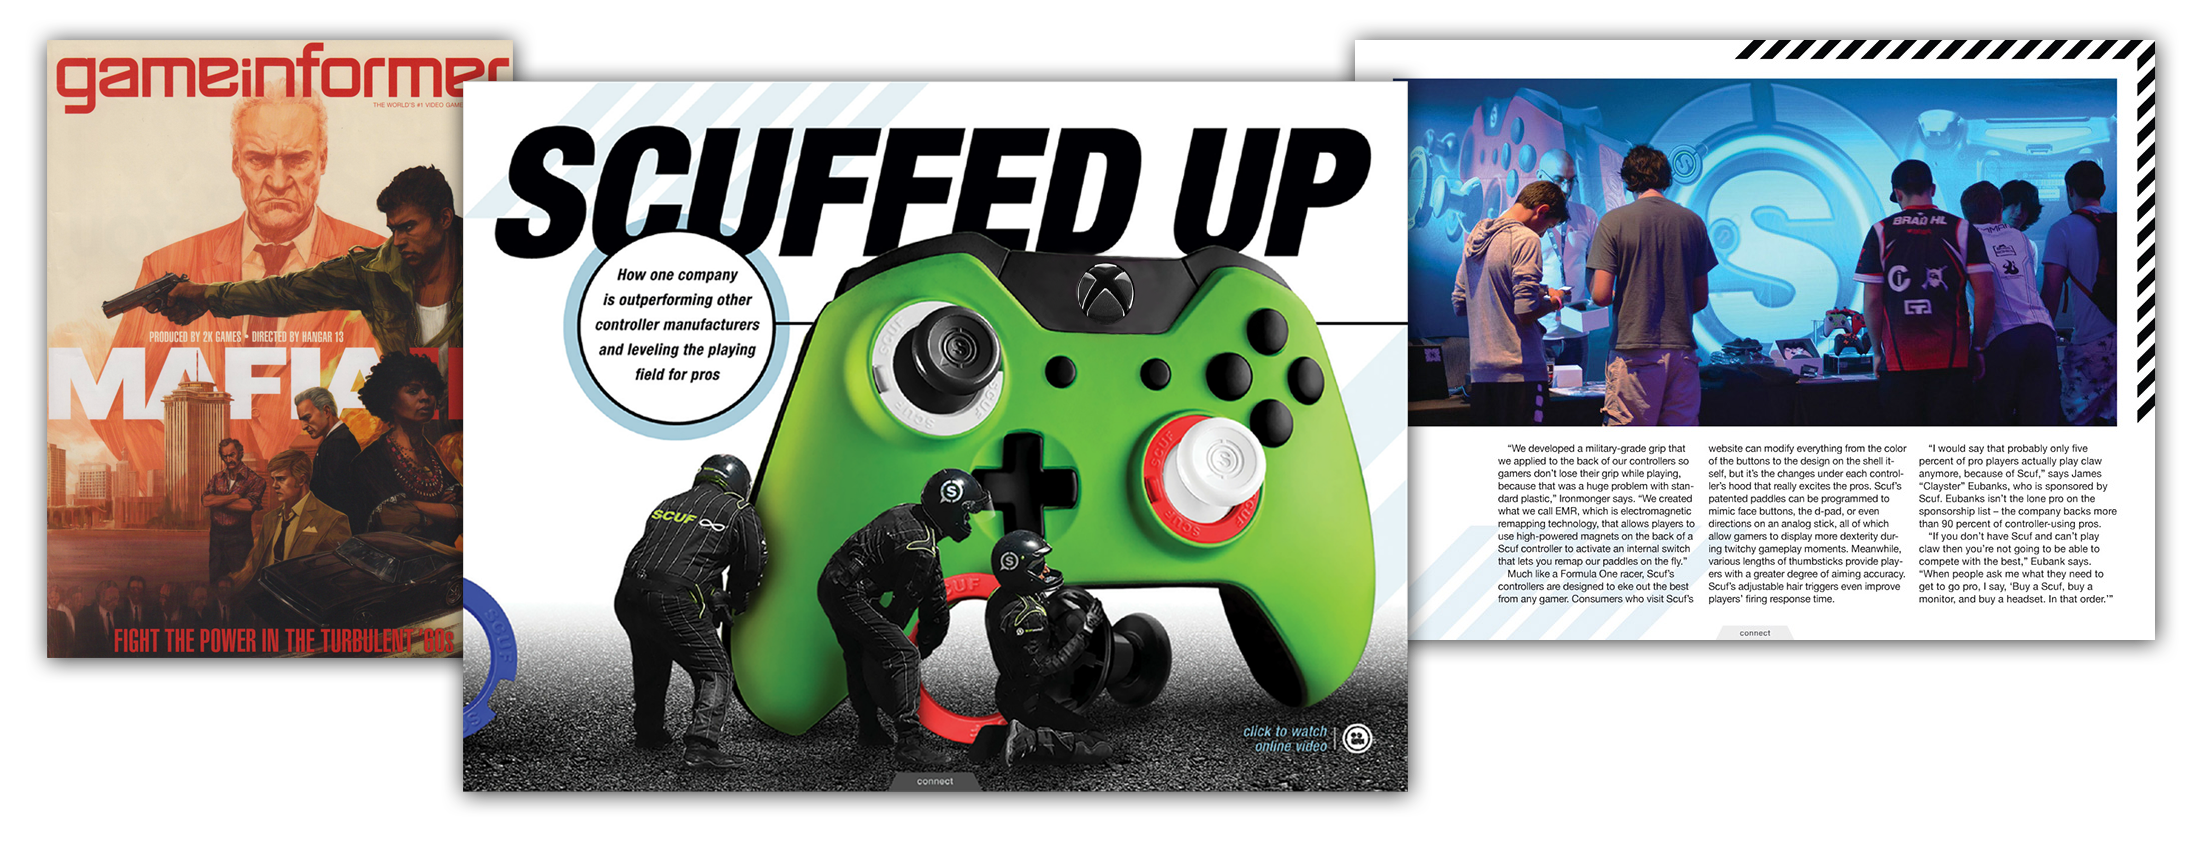 SCUF Game Informer article